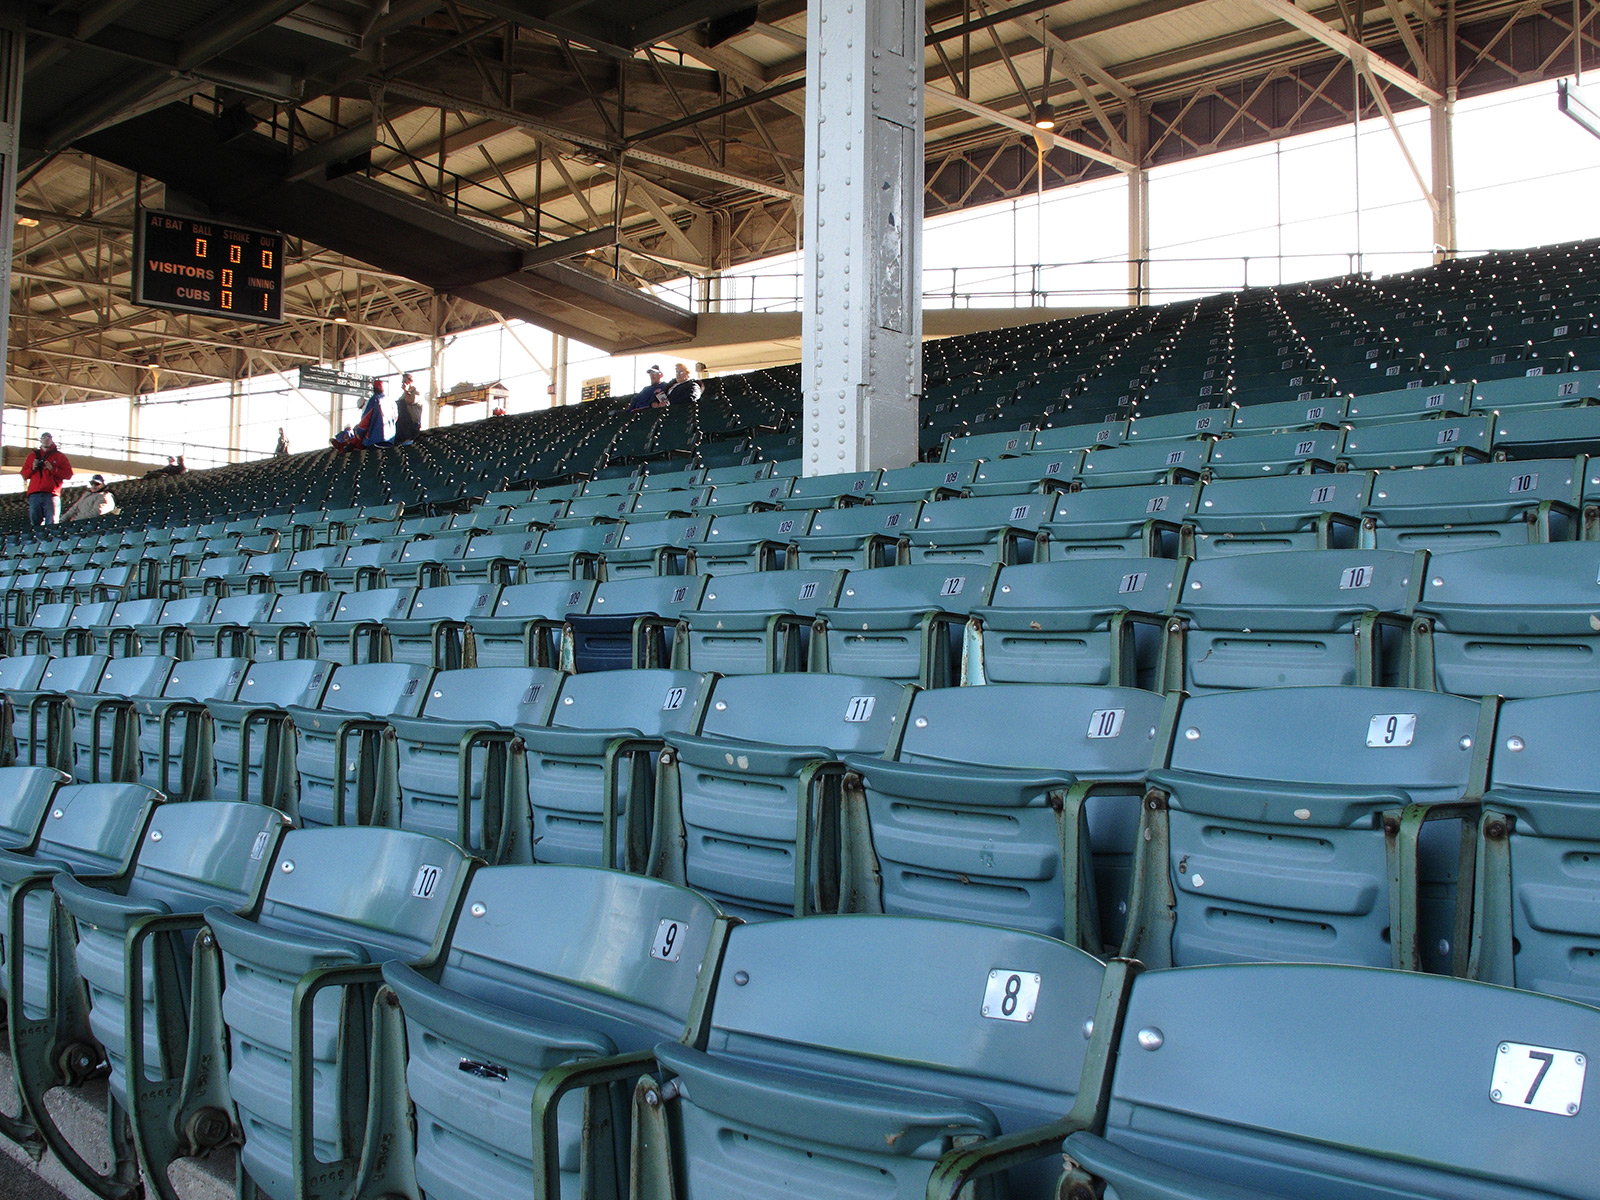 Picture of the stands at Wrigley Field.